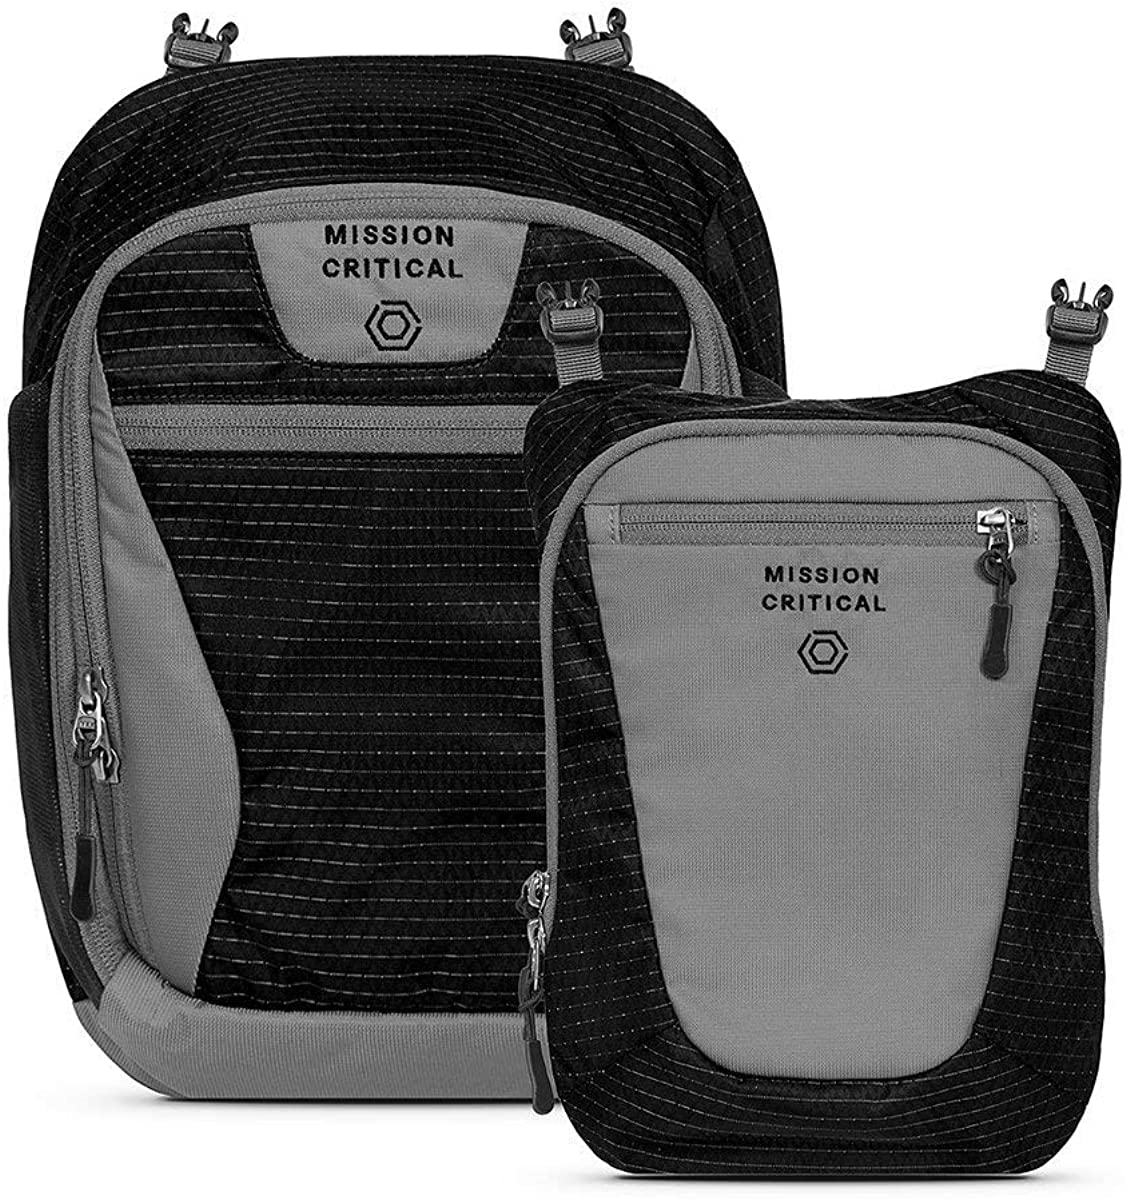 Mission Critical S.02 Daypack Baby Gear for Dads Attaches to Carrier